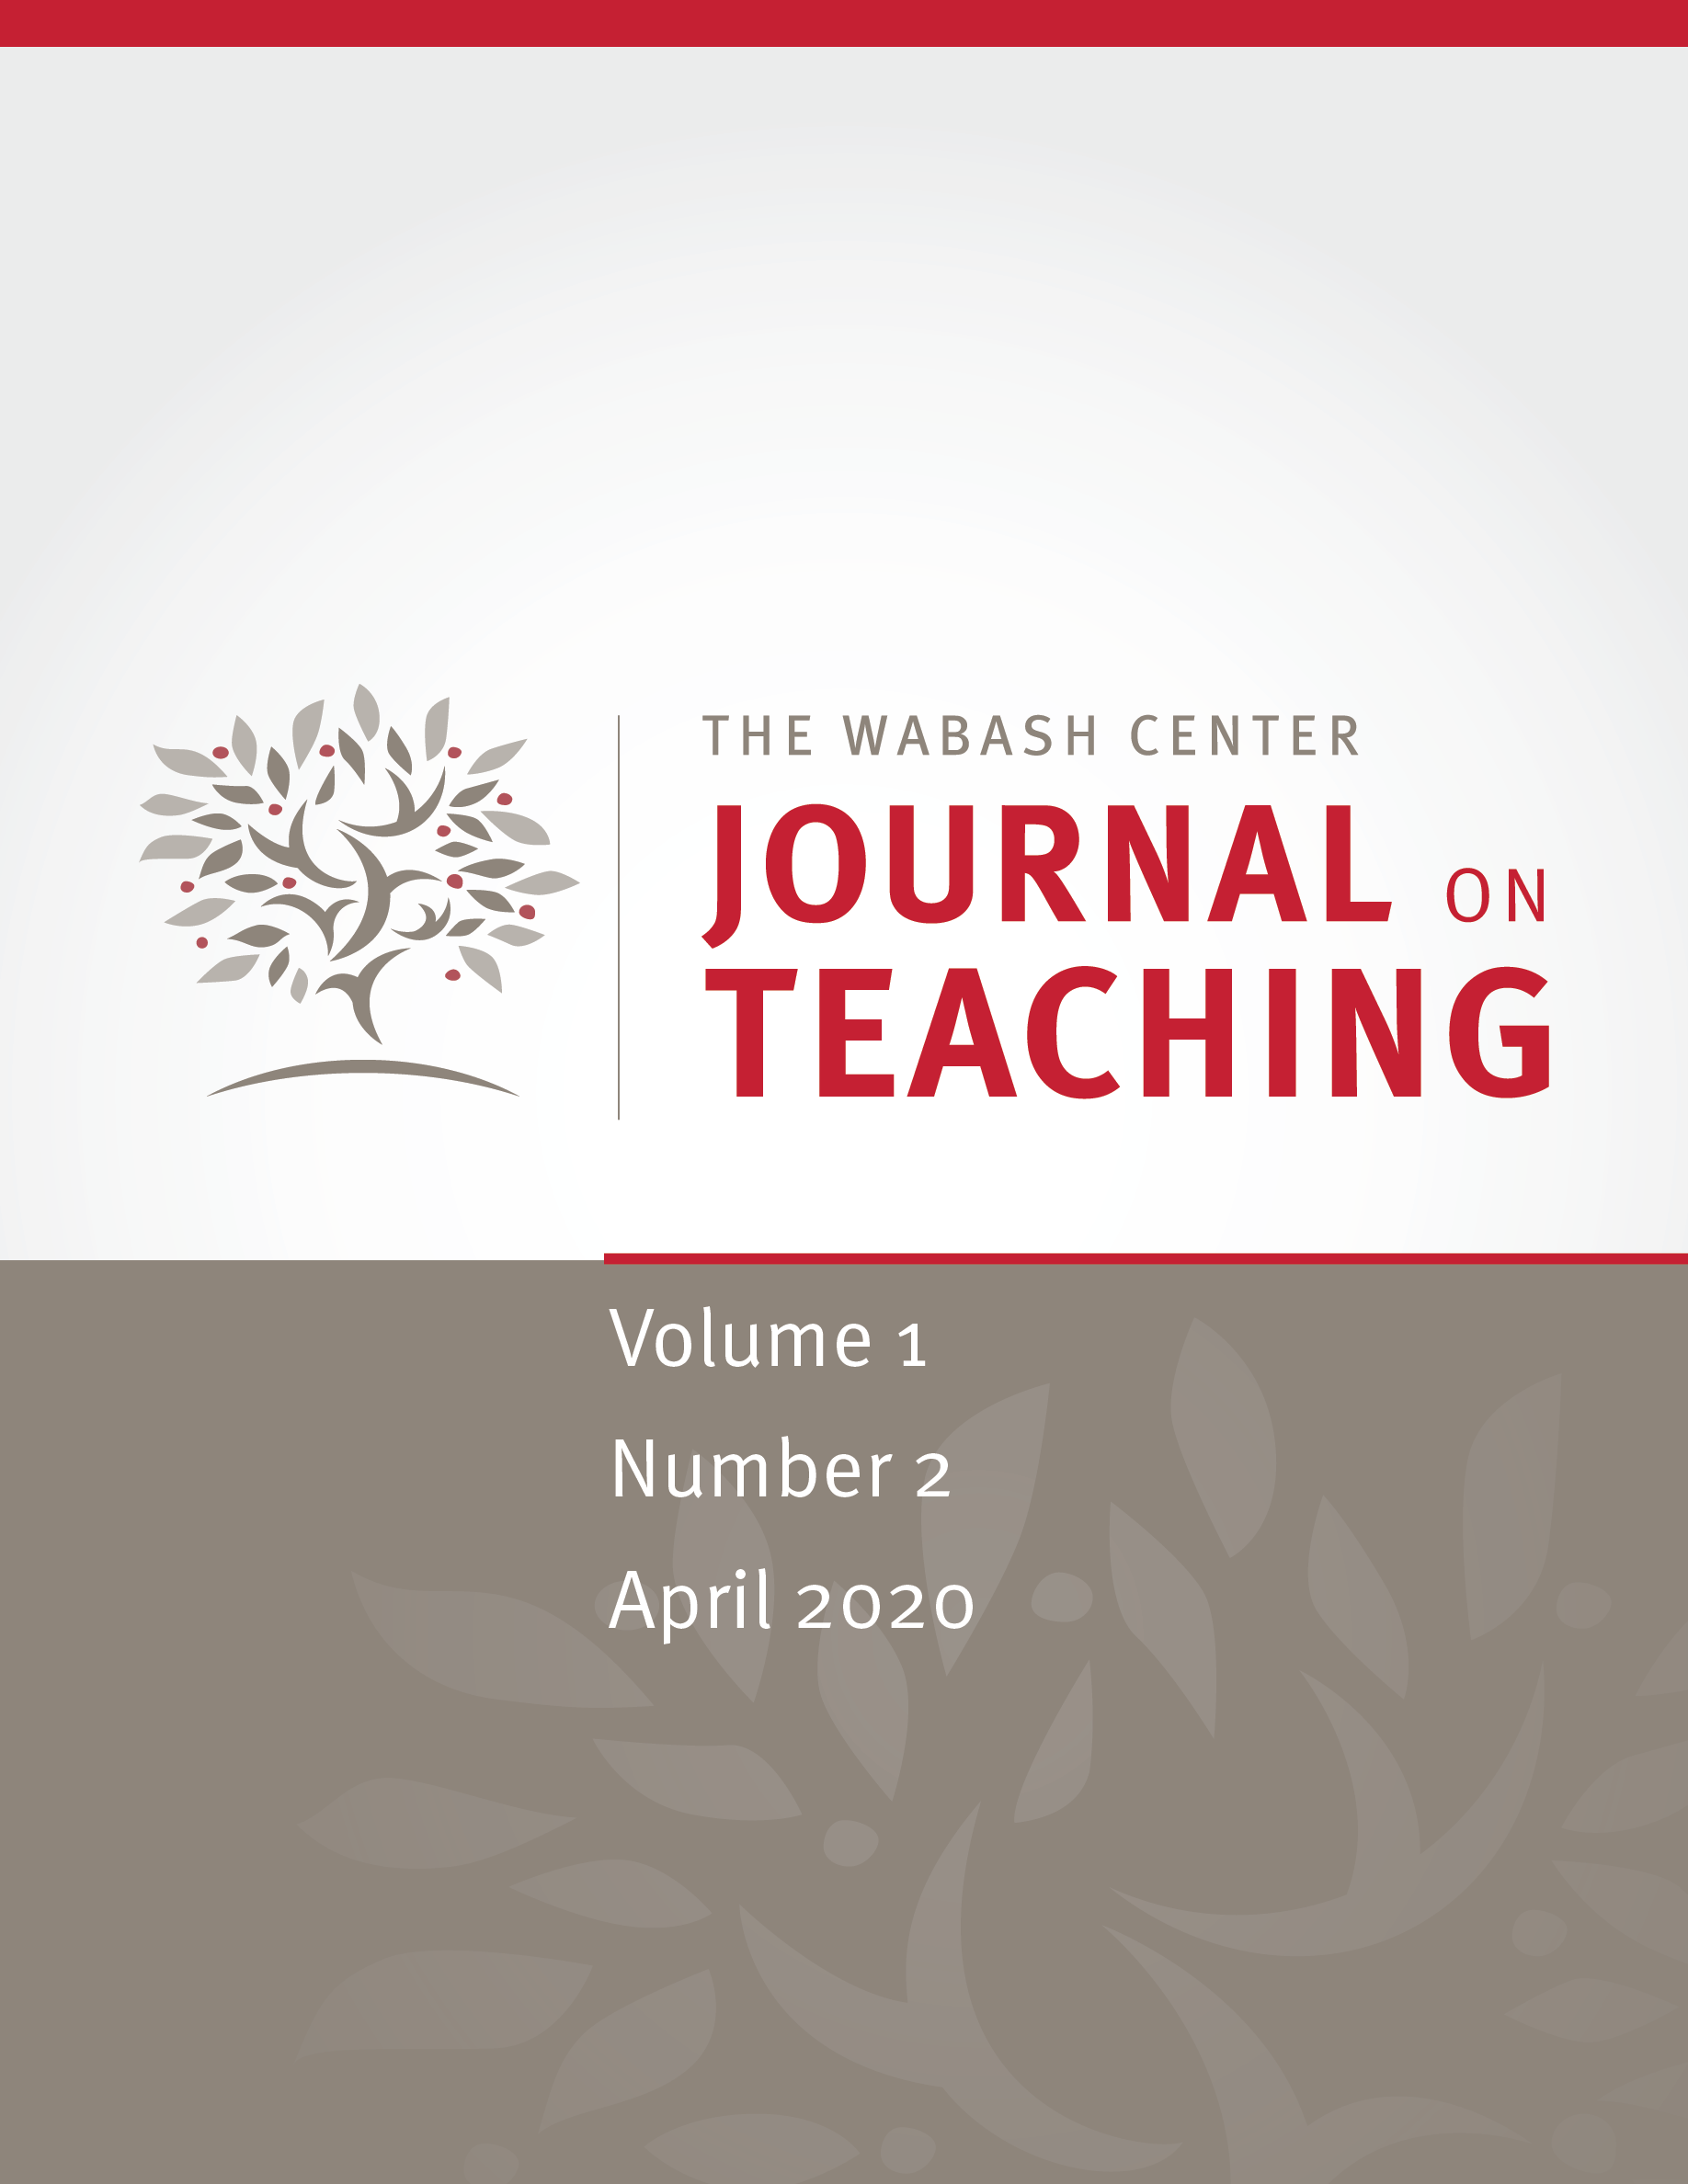 JoT volume 1, issue 2 (April 2020)